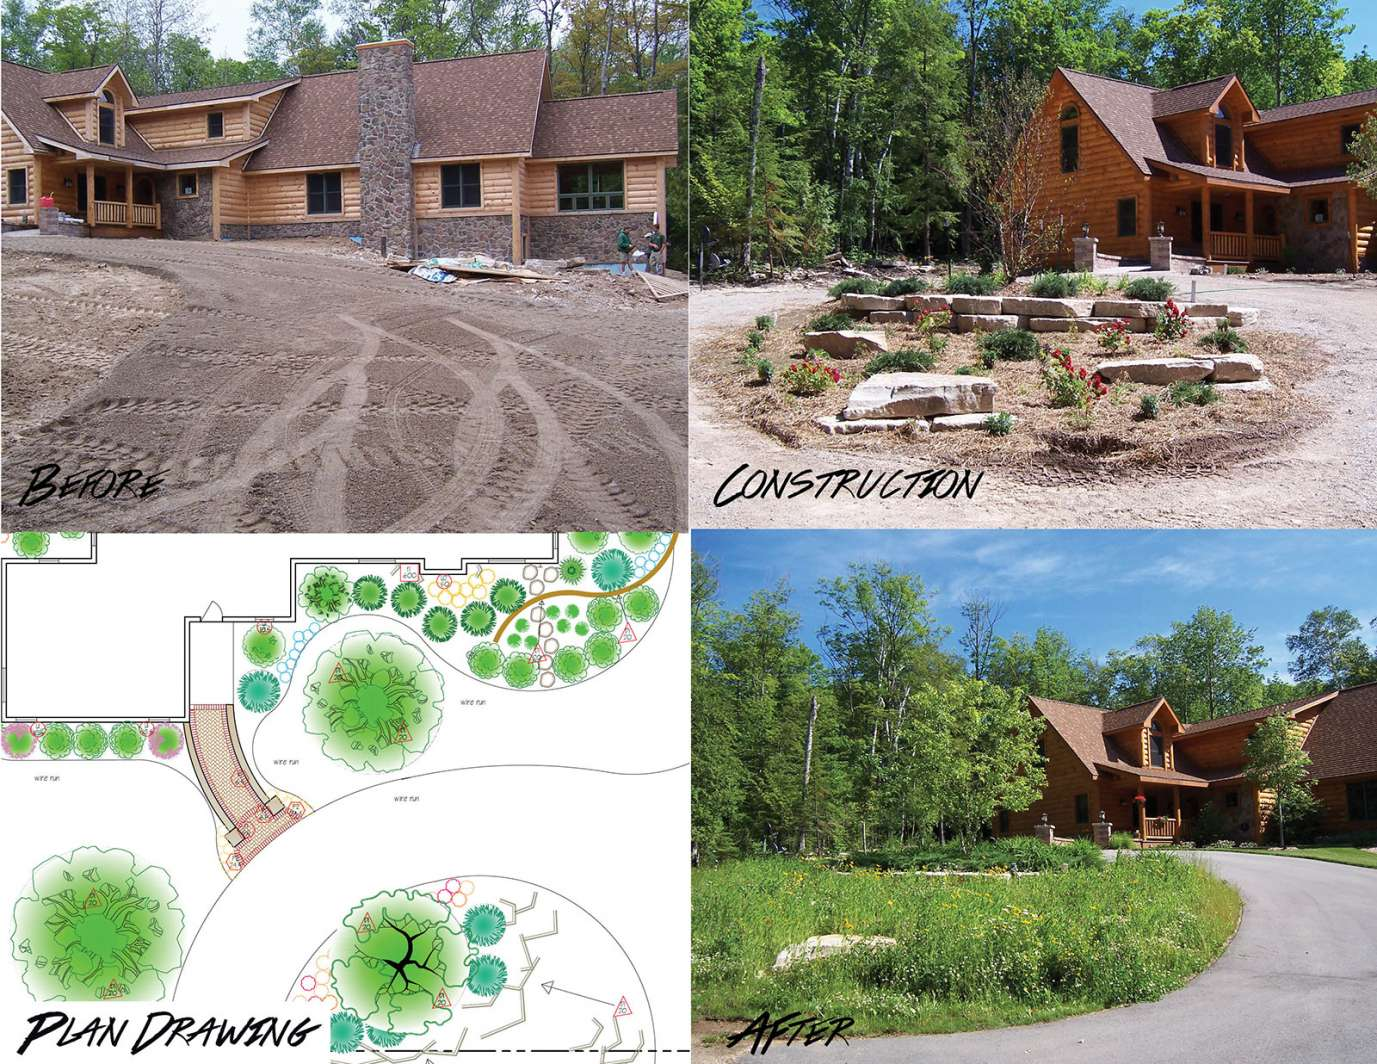 Before And After Landscaping Photo Gallery In Appleton Wi